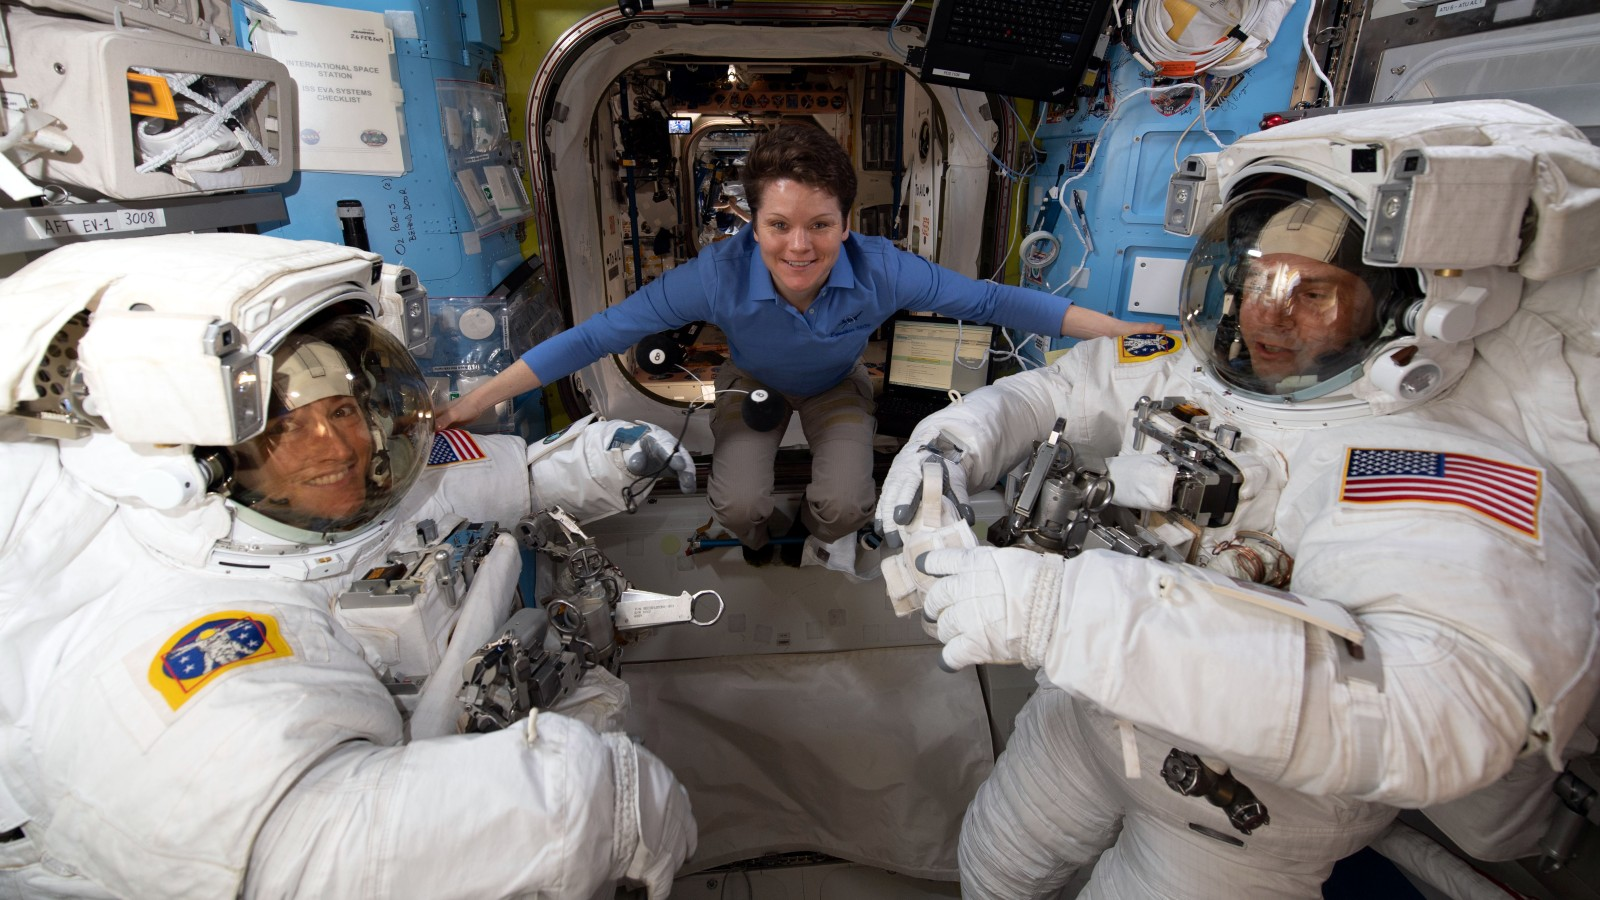 qz.com - Tim Fernholz - First all-women spacewalk canceled over lack of medium-sized spacesuits